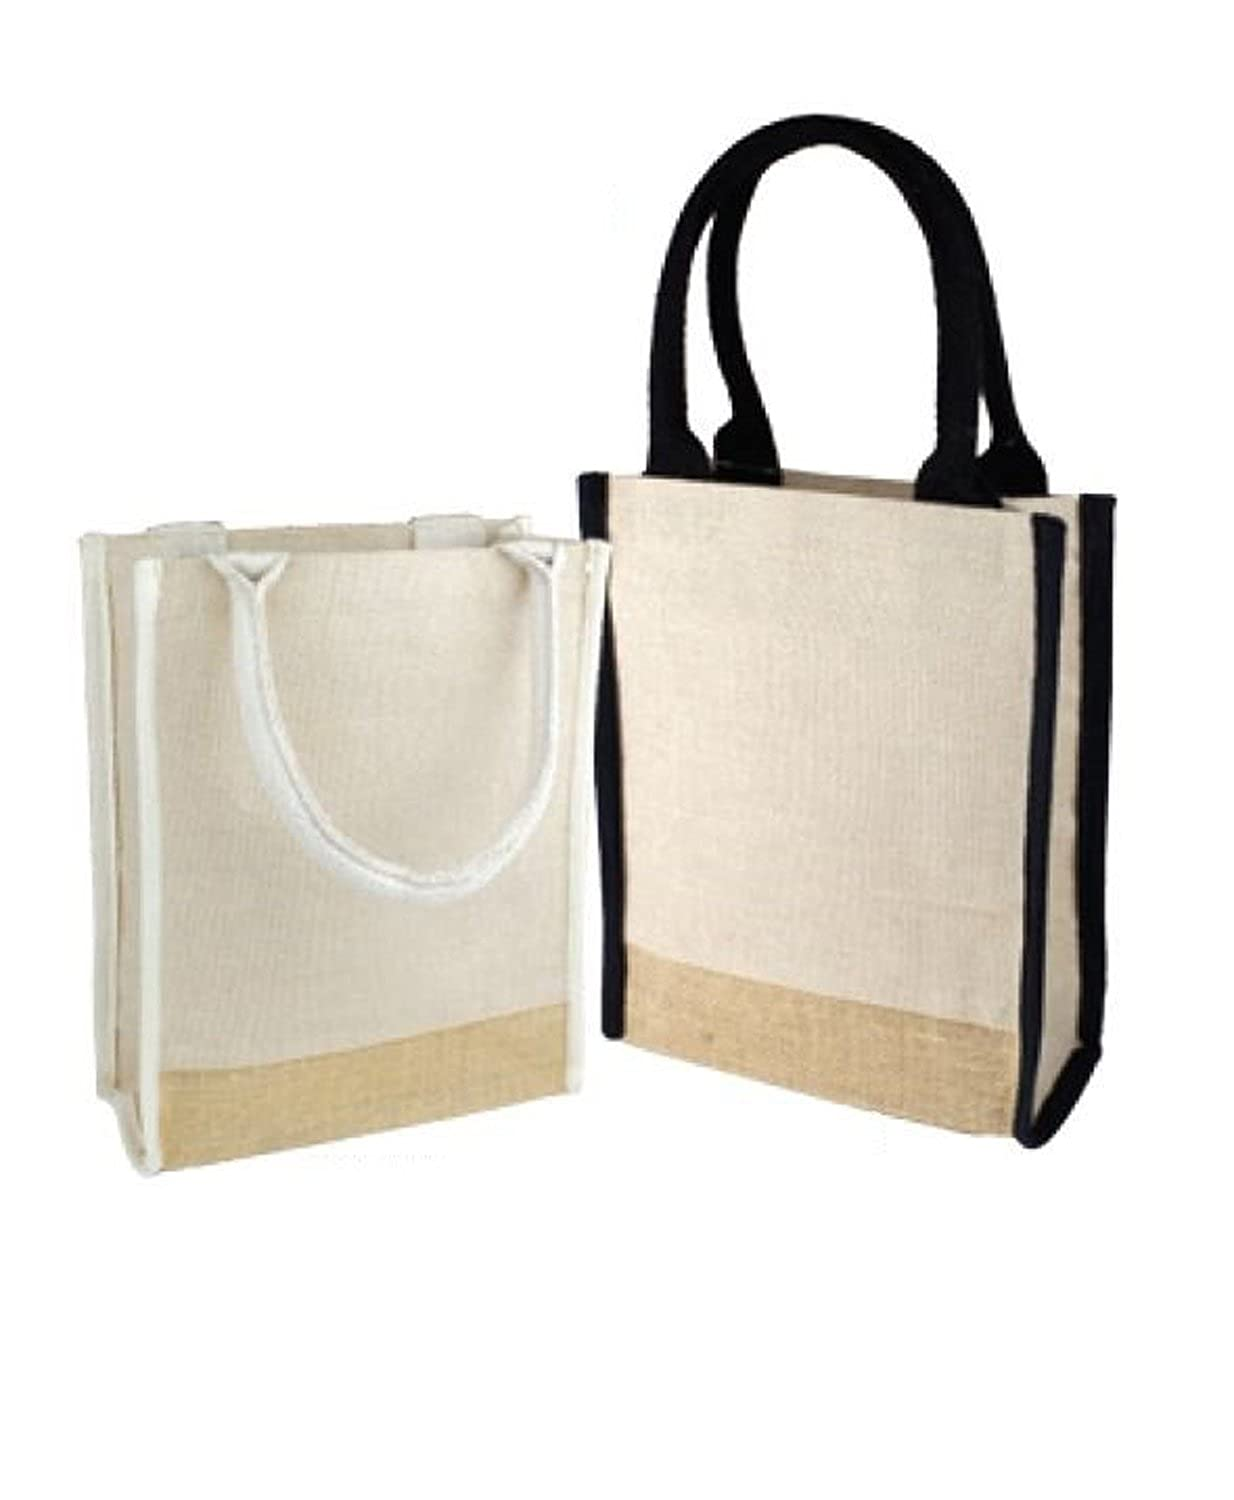 Jute Blend Cute Book Tote Bag with Full Gusset by BagzDepot Fashionable Jute Burlap Tote Bags